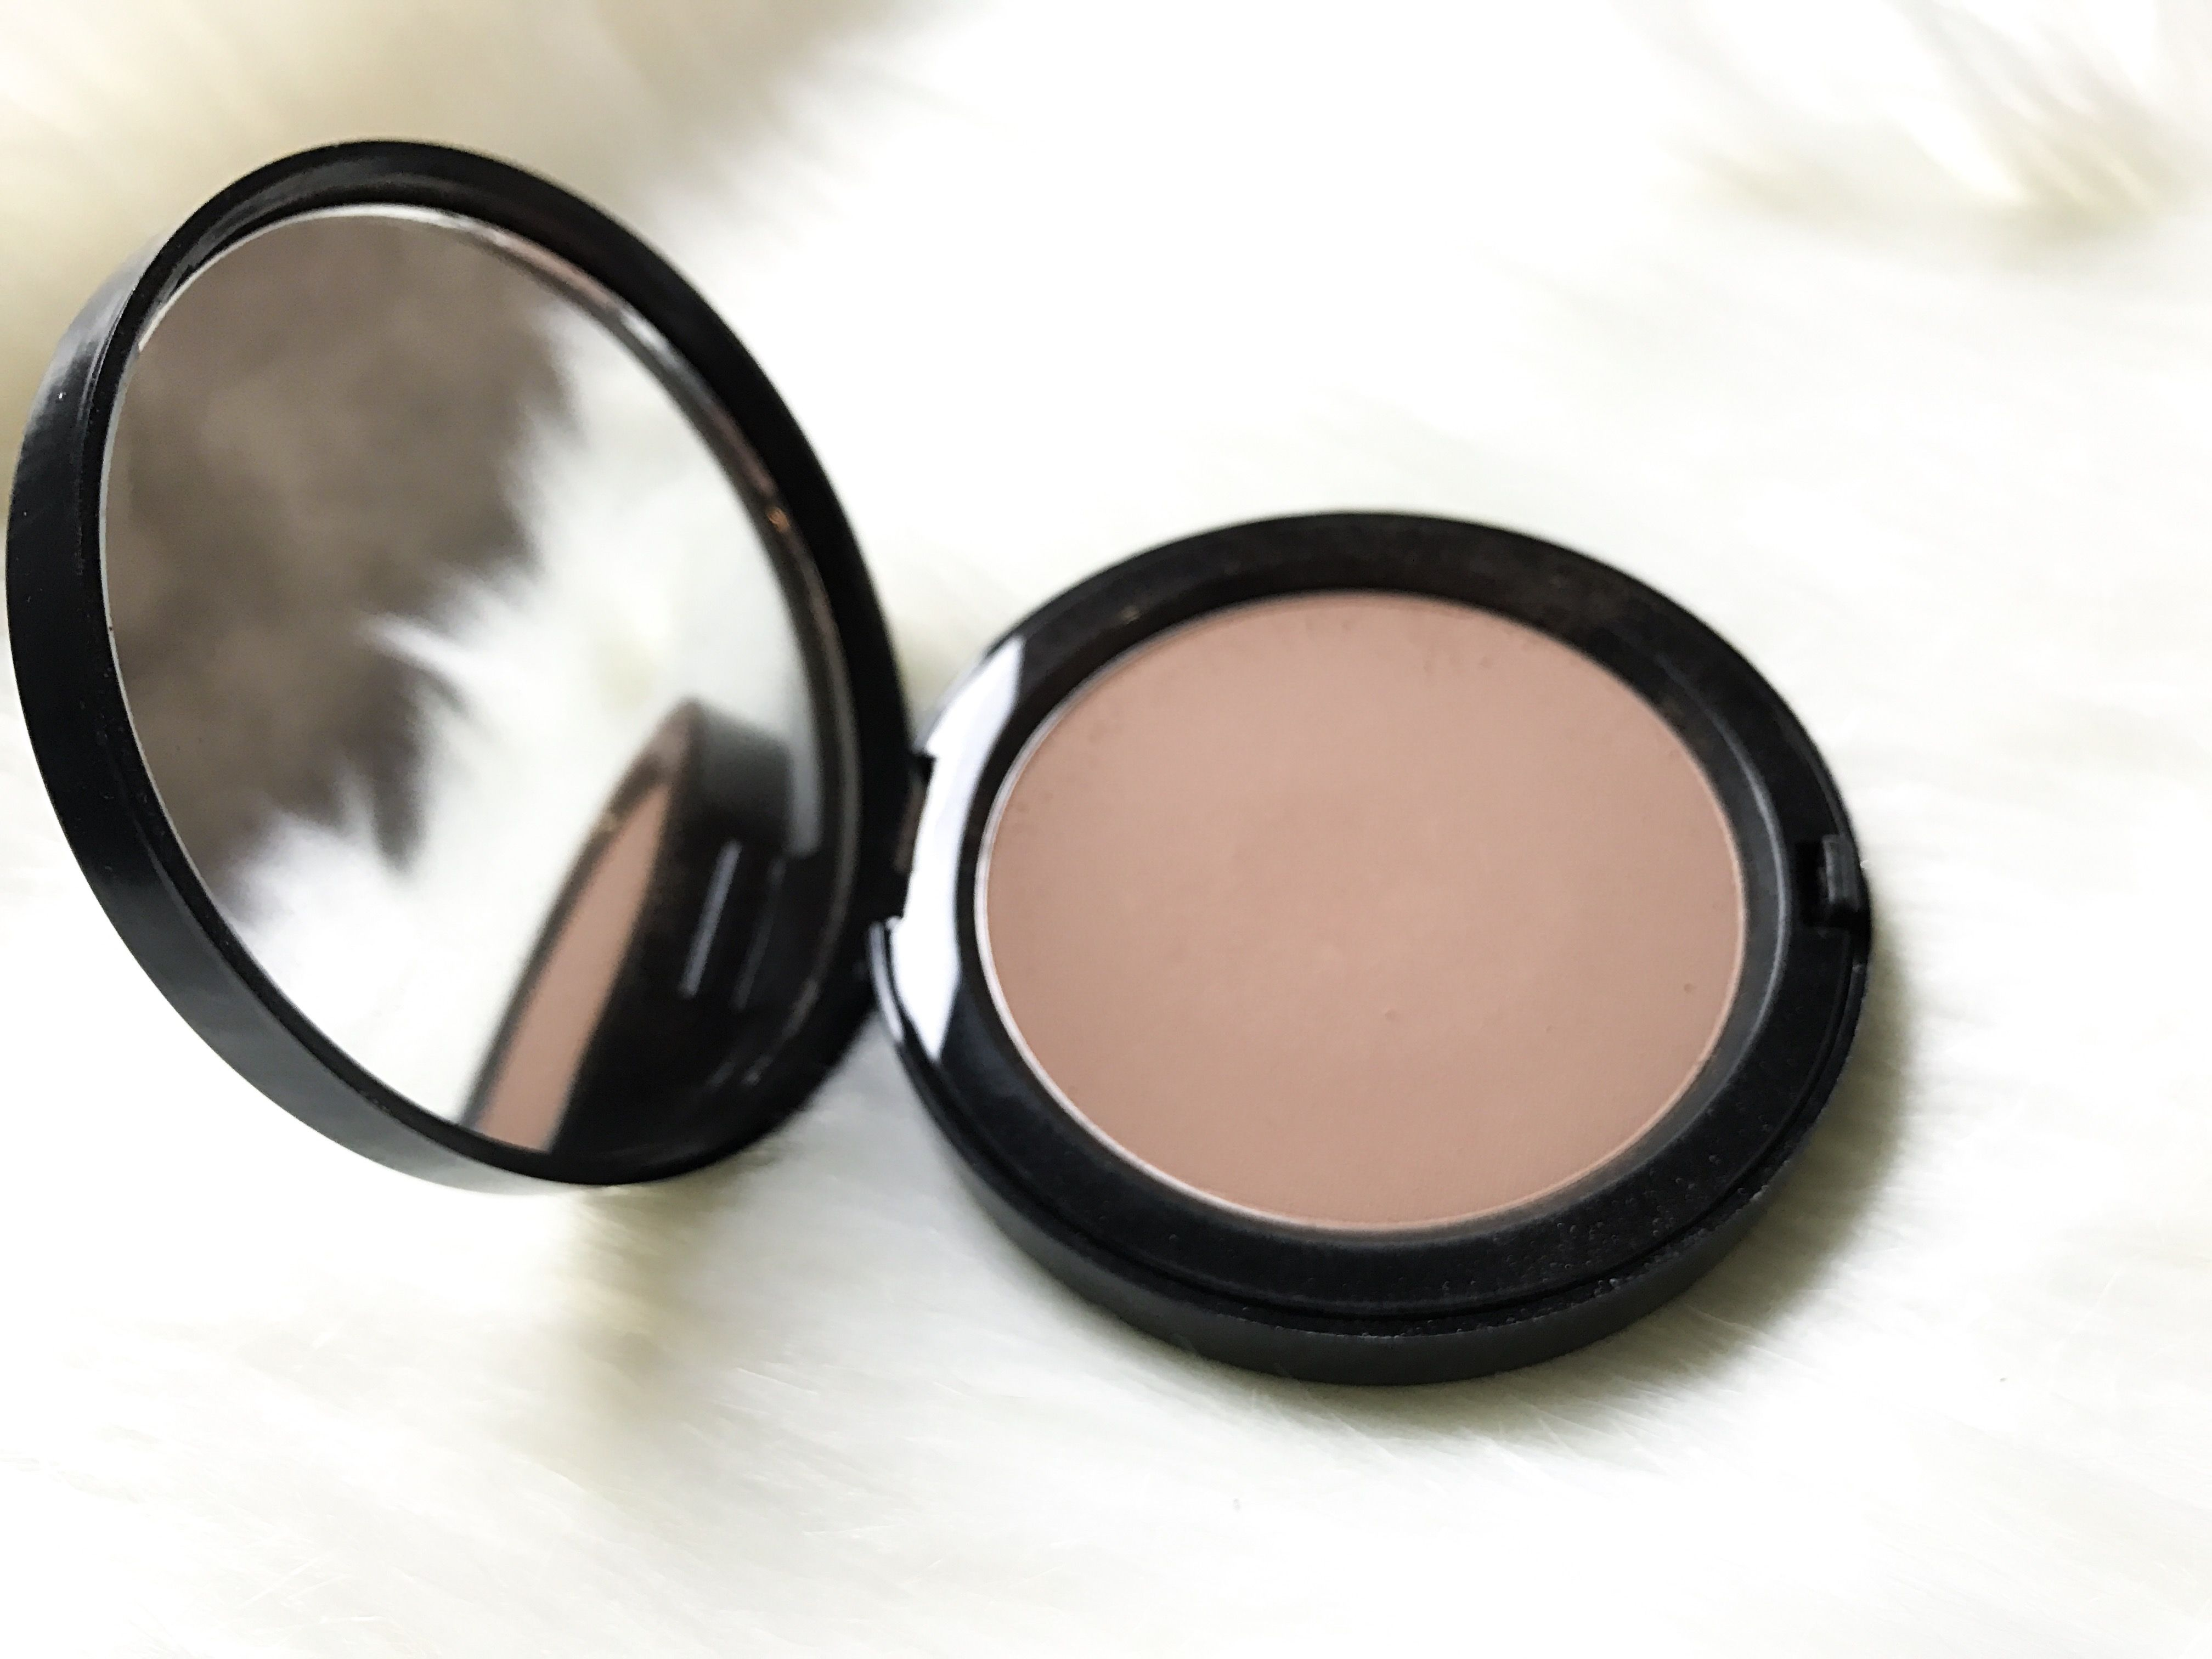 My favorite go to bronzer is from Bobbi brown! It gives me